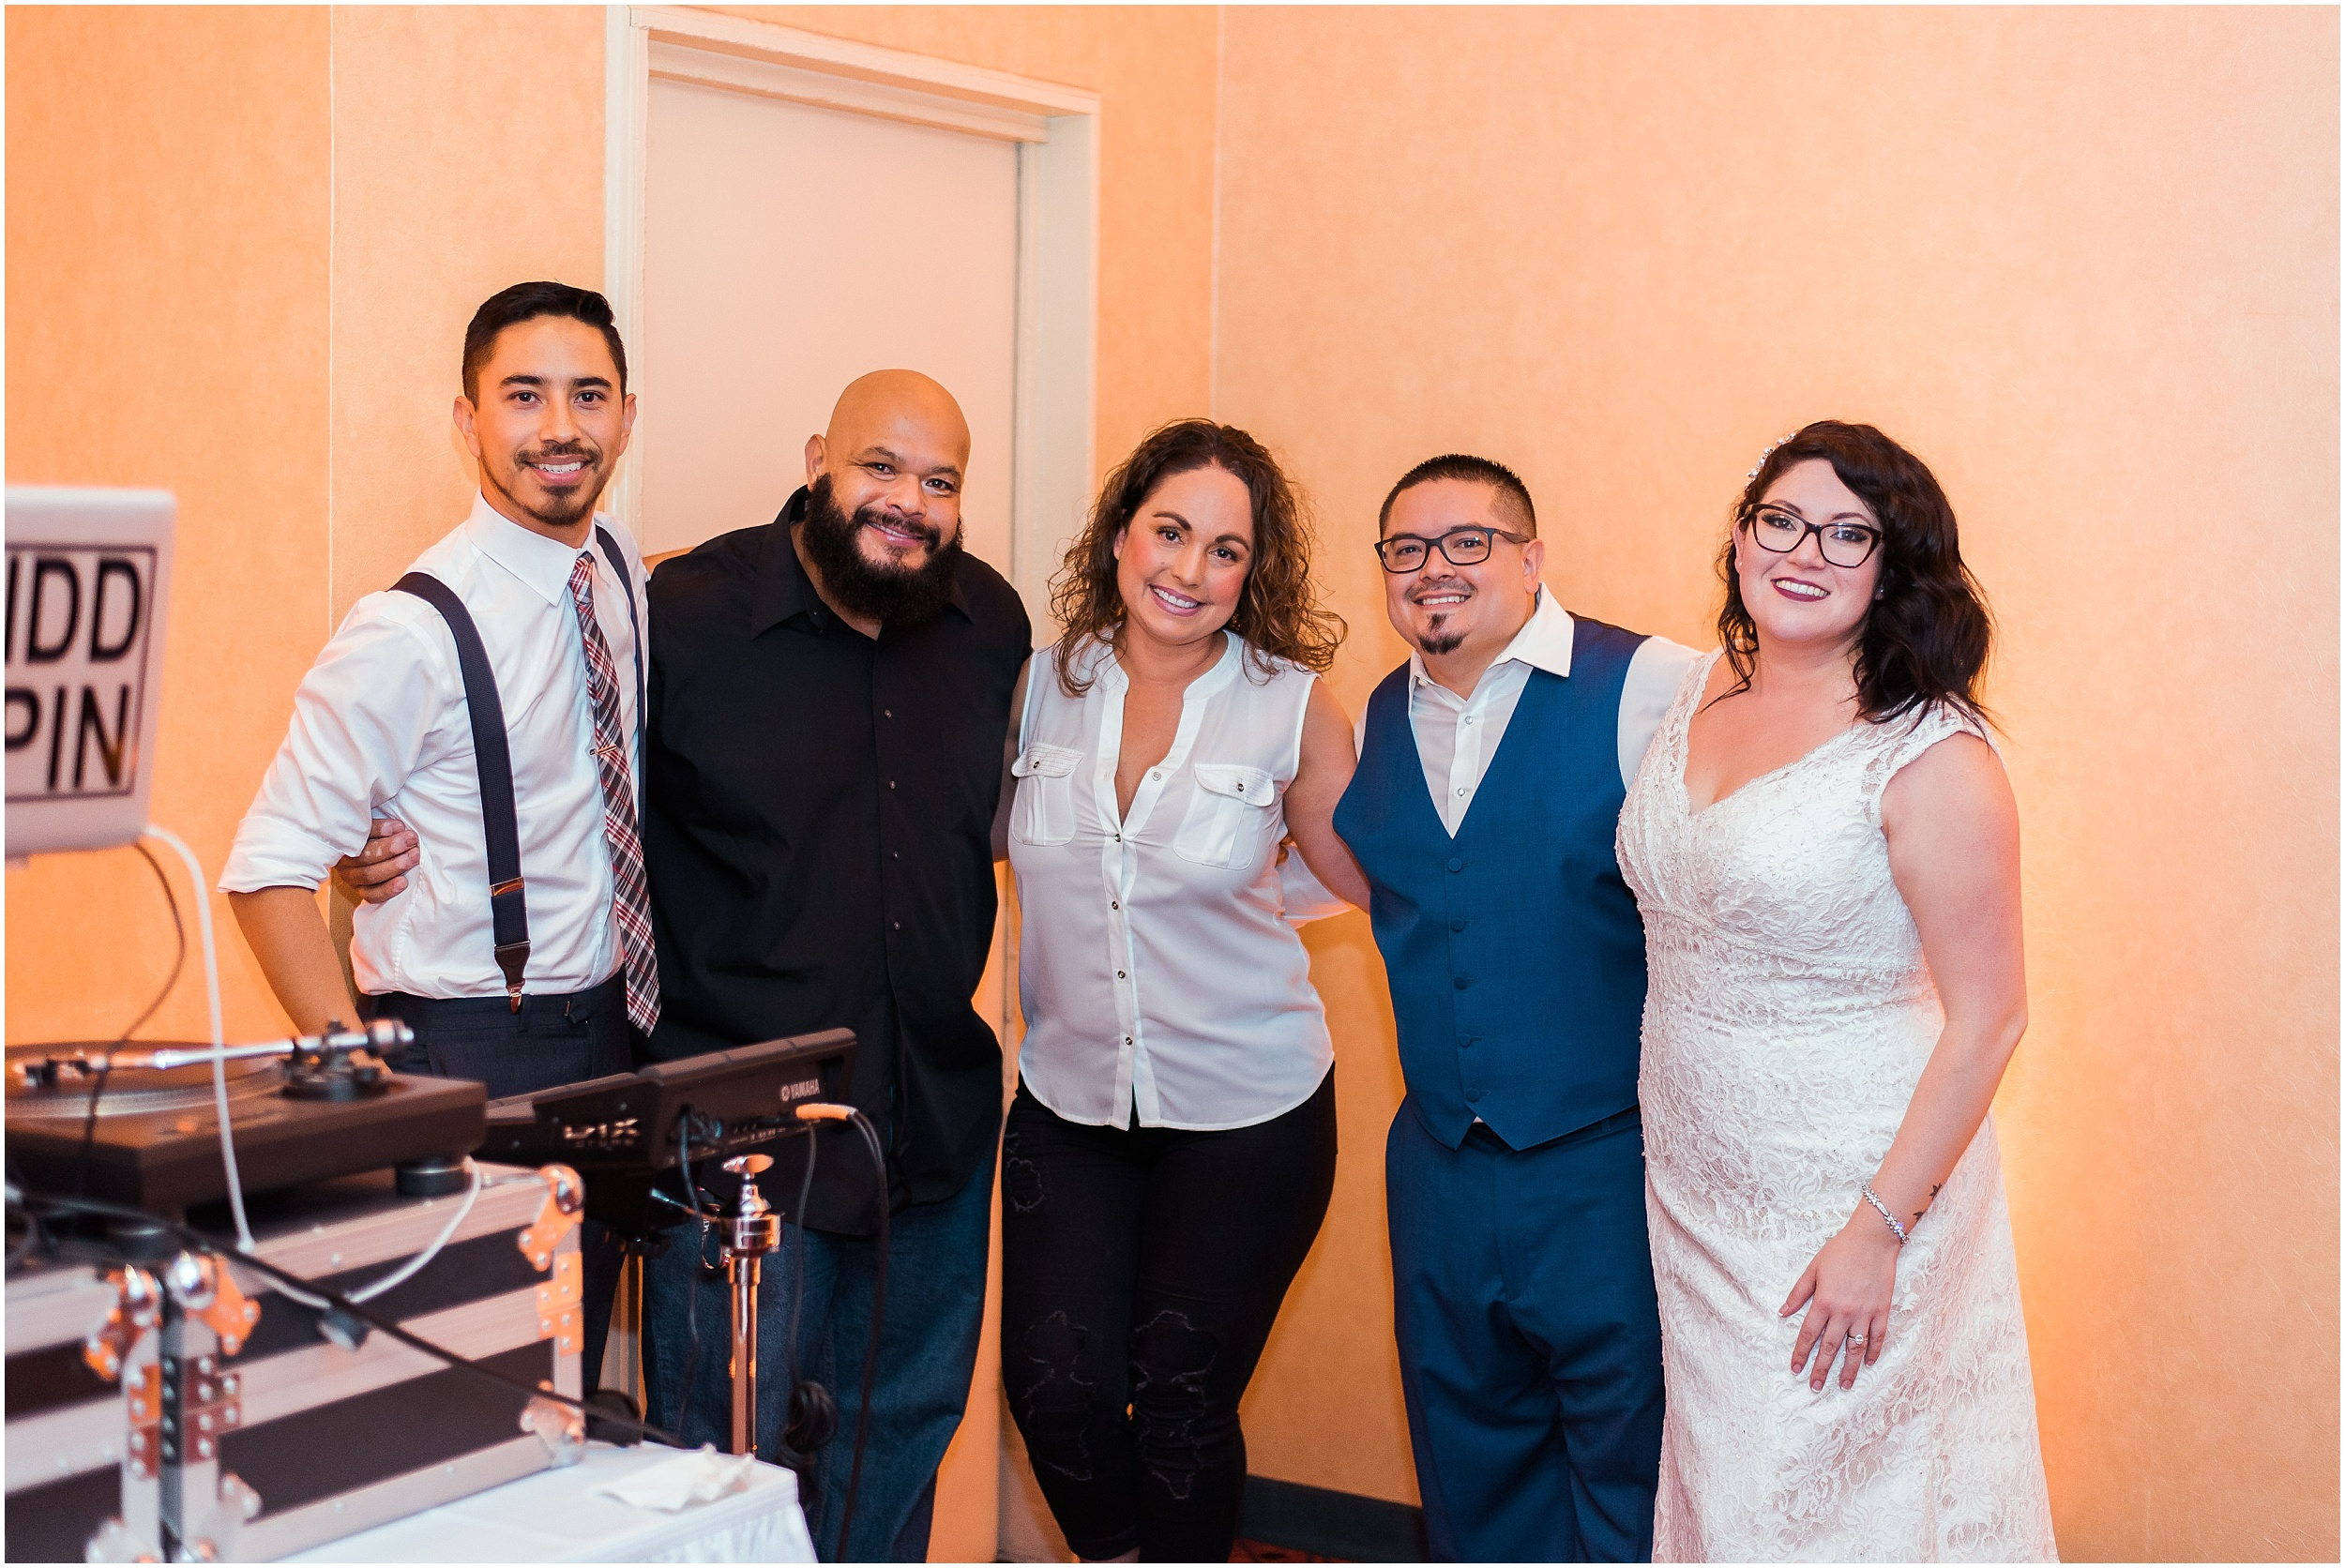 Valeria-Gonzalez-Photography-Wedding-and-Portrait-Photographer-Richmond-Virginia-Wedding—Residence Inn by Marriott-in-Oxnard-California_0050.jpg